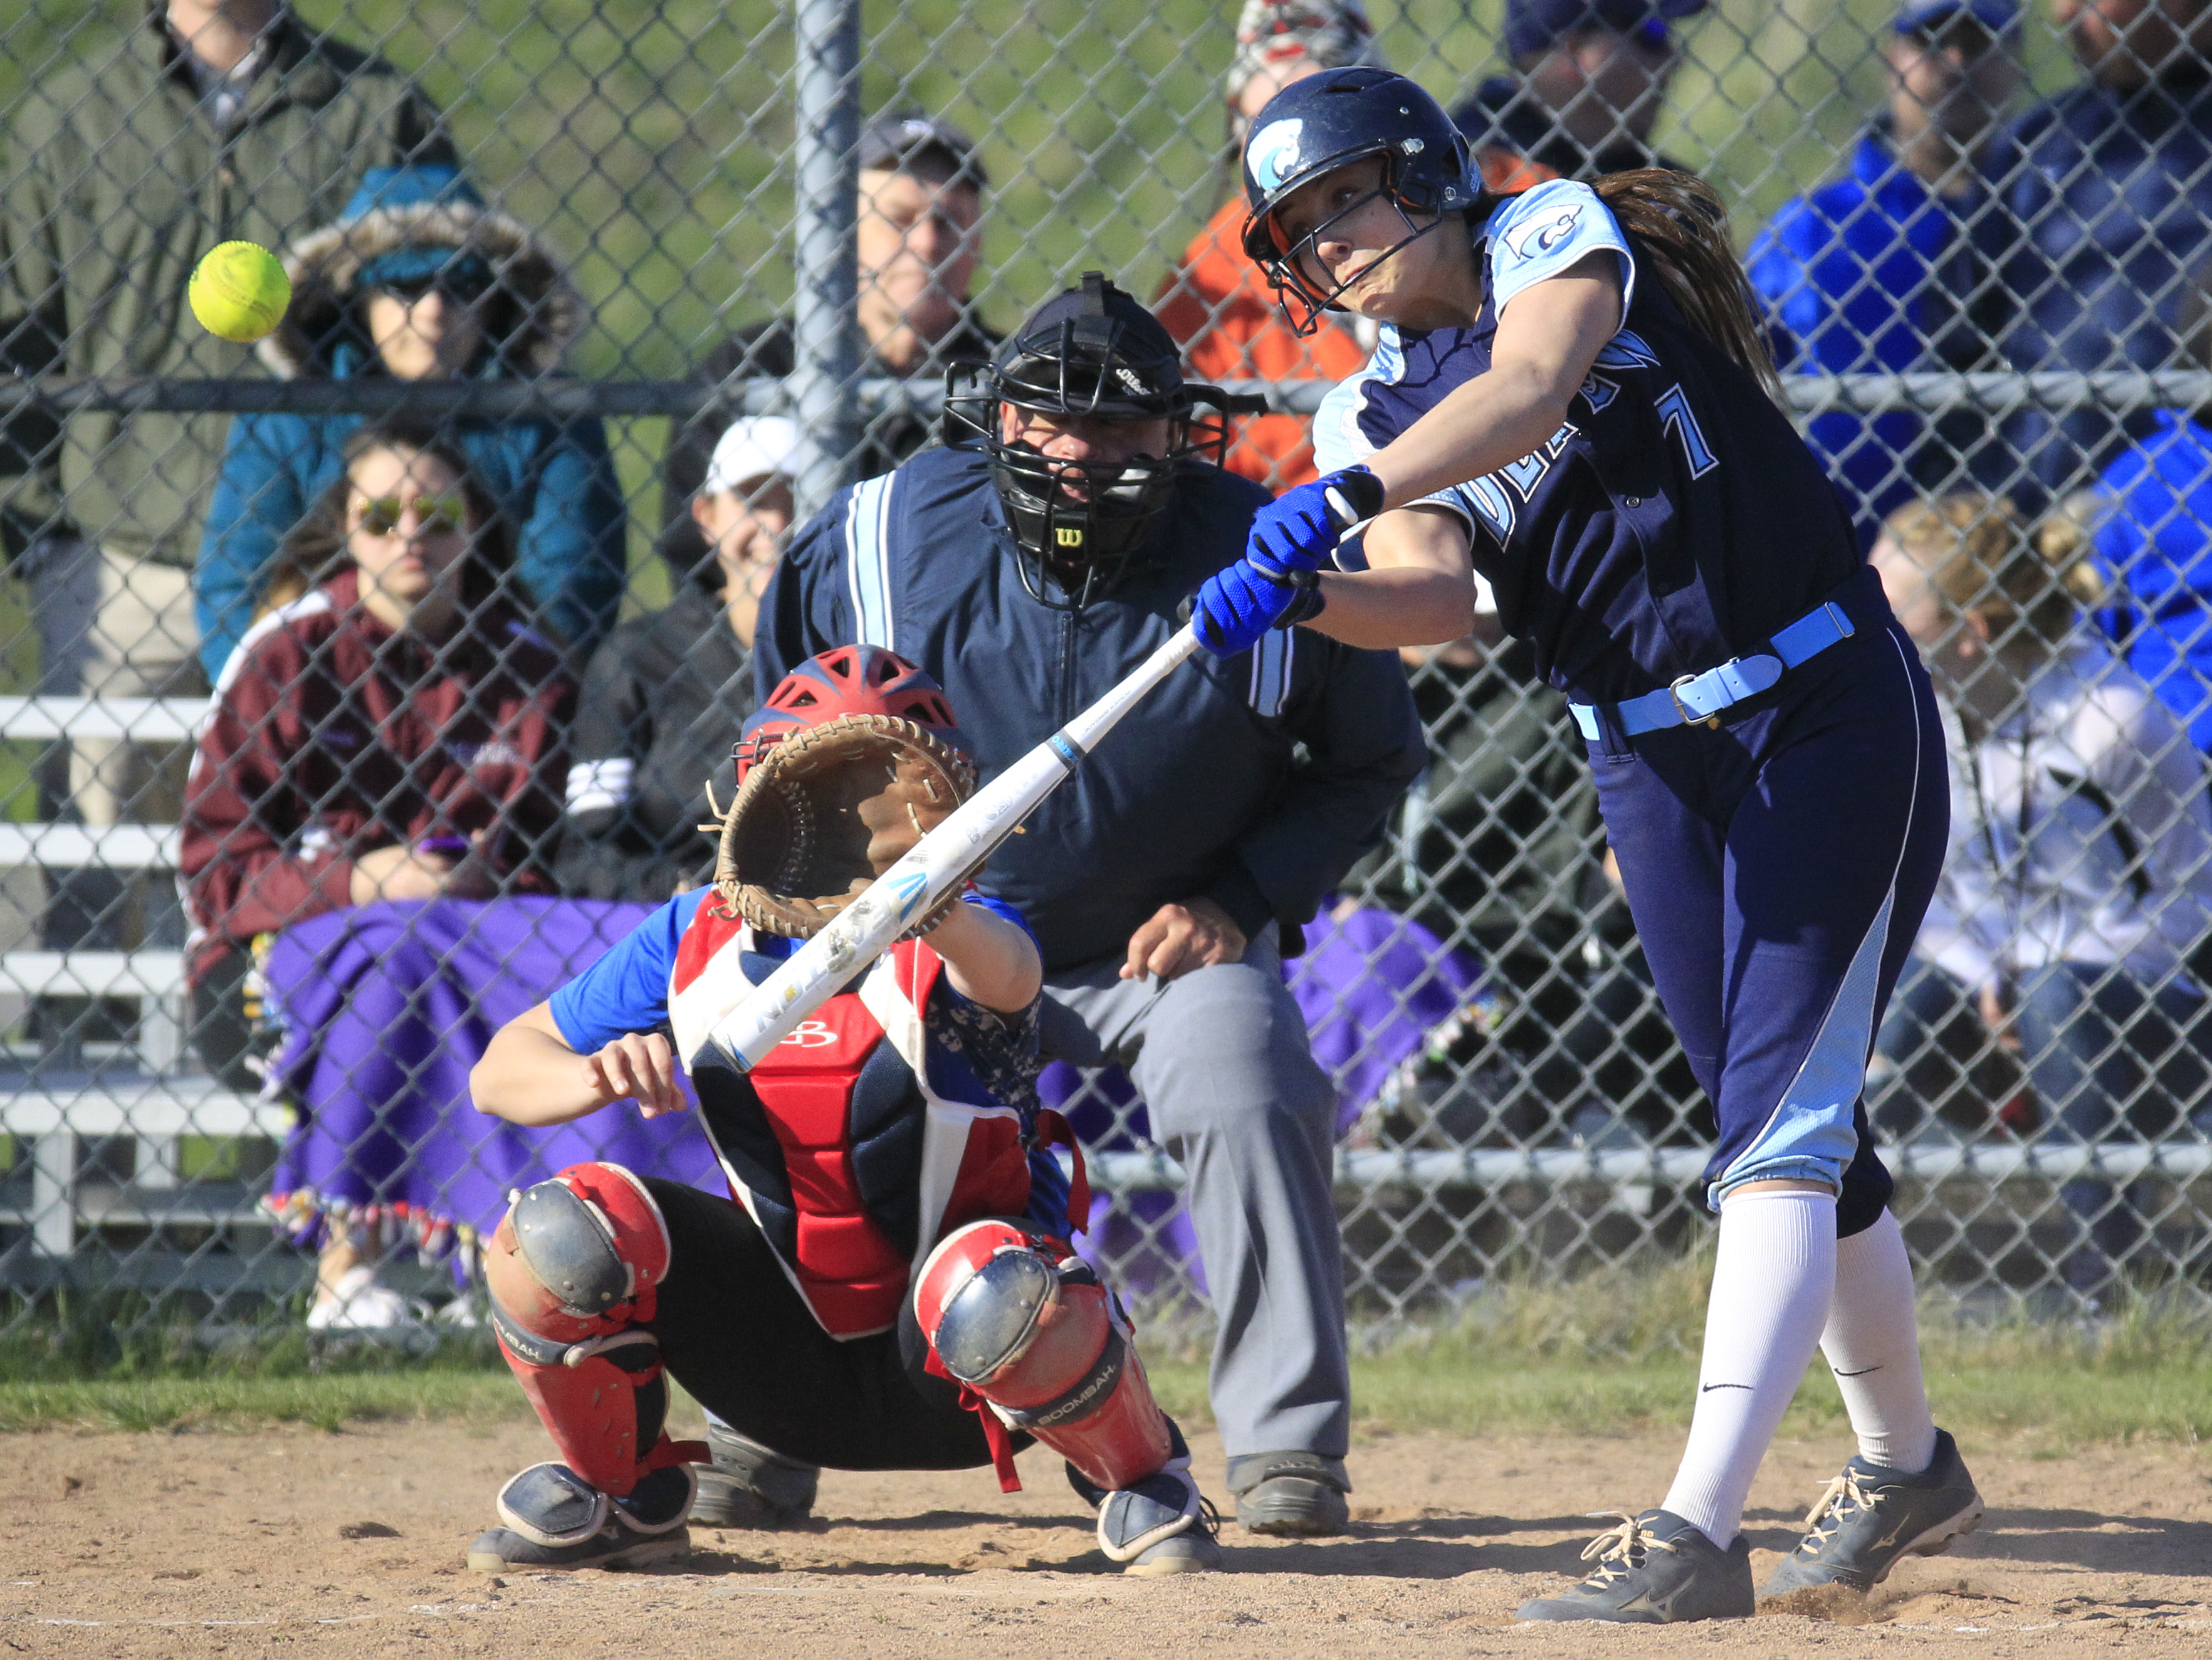 Depew's Karsen Cotton likes batting in the lead-off spot for top-ranked small school. (Harry Scull Jr./Buffalo News)